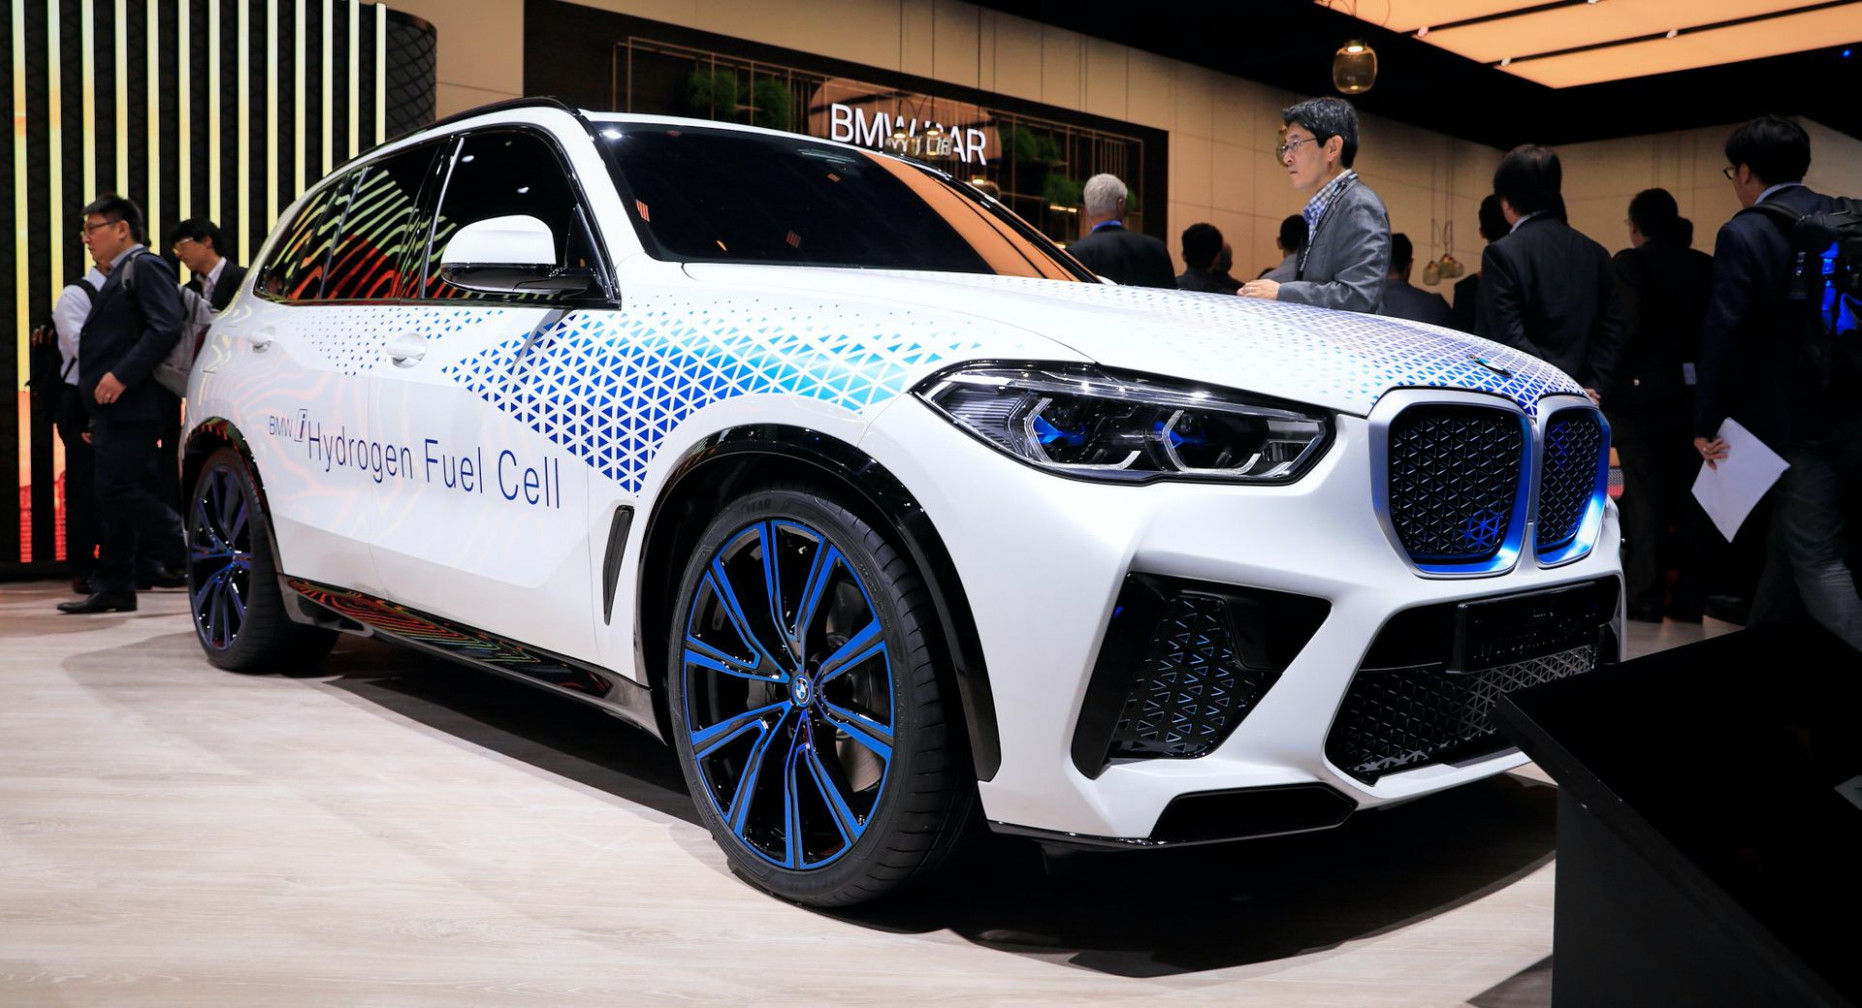 Redesign and Review 2022 Next Gen BMW X5 Suv